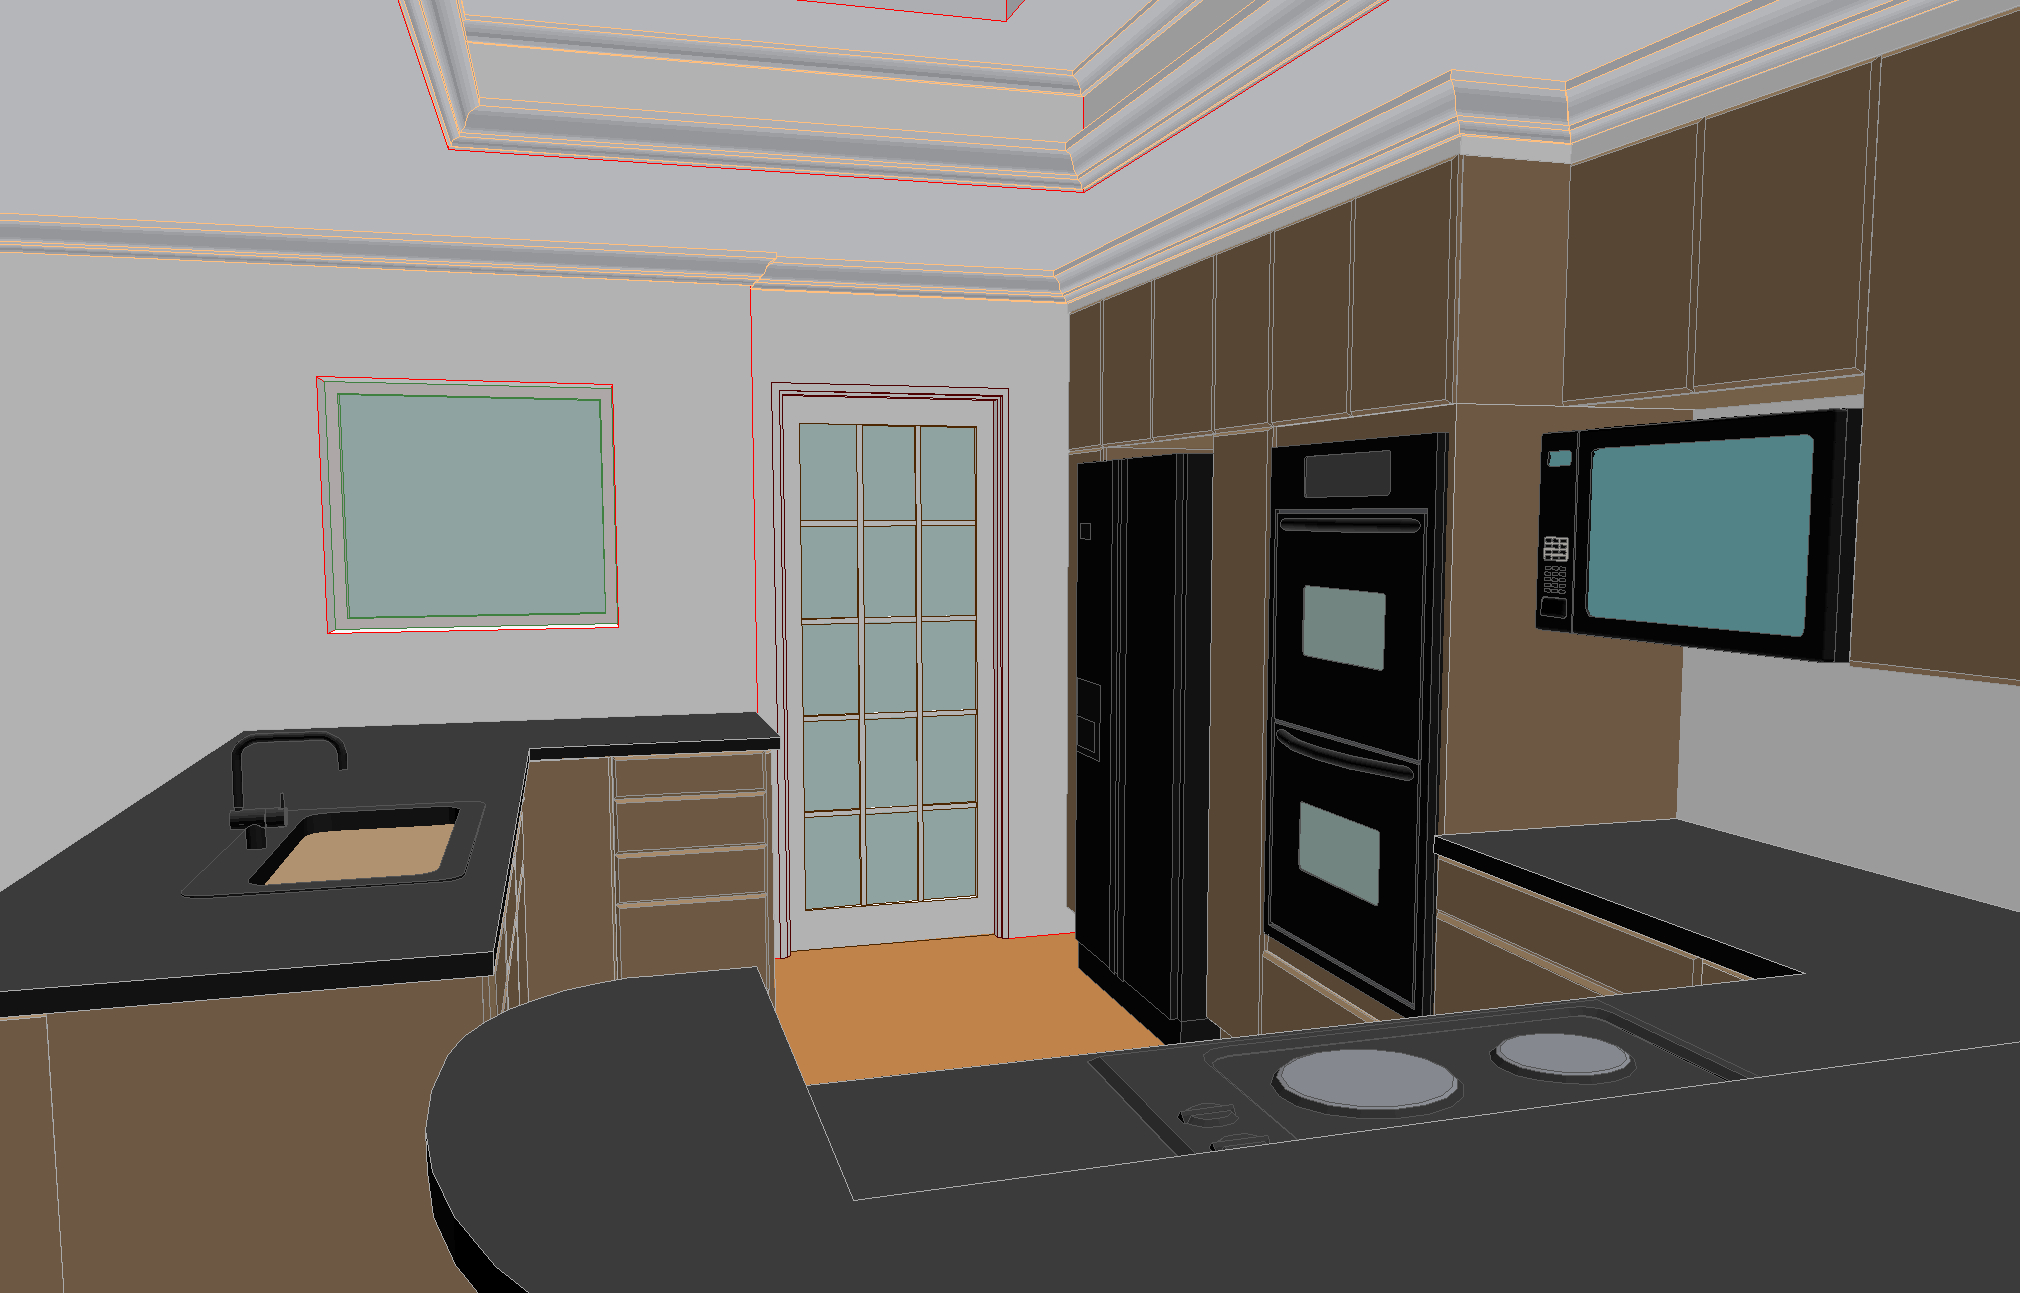 The 3D visualization process helps clients understand what they're getting before starting.